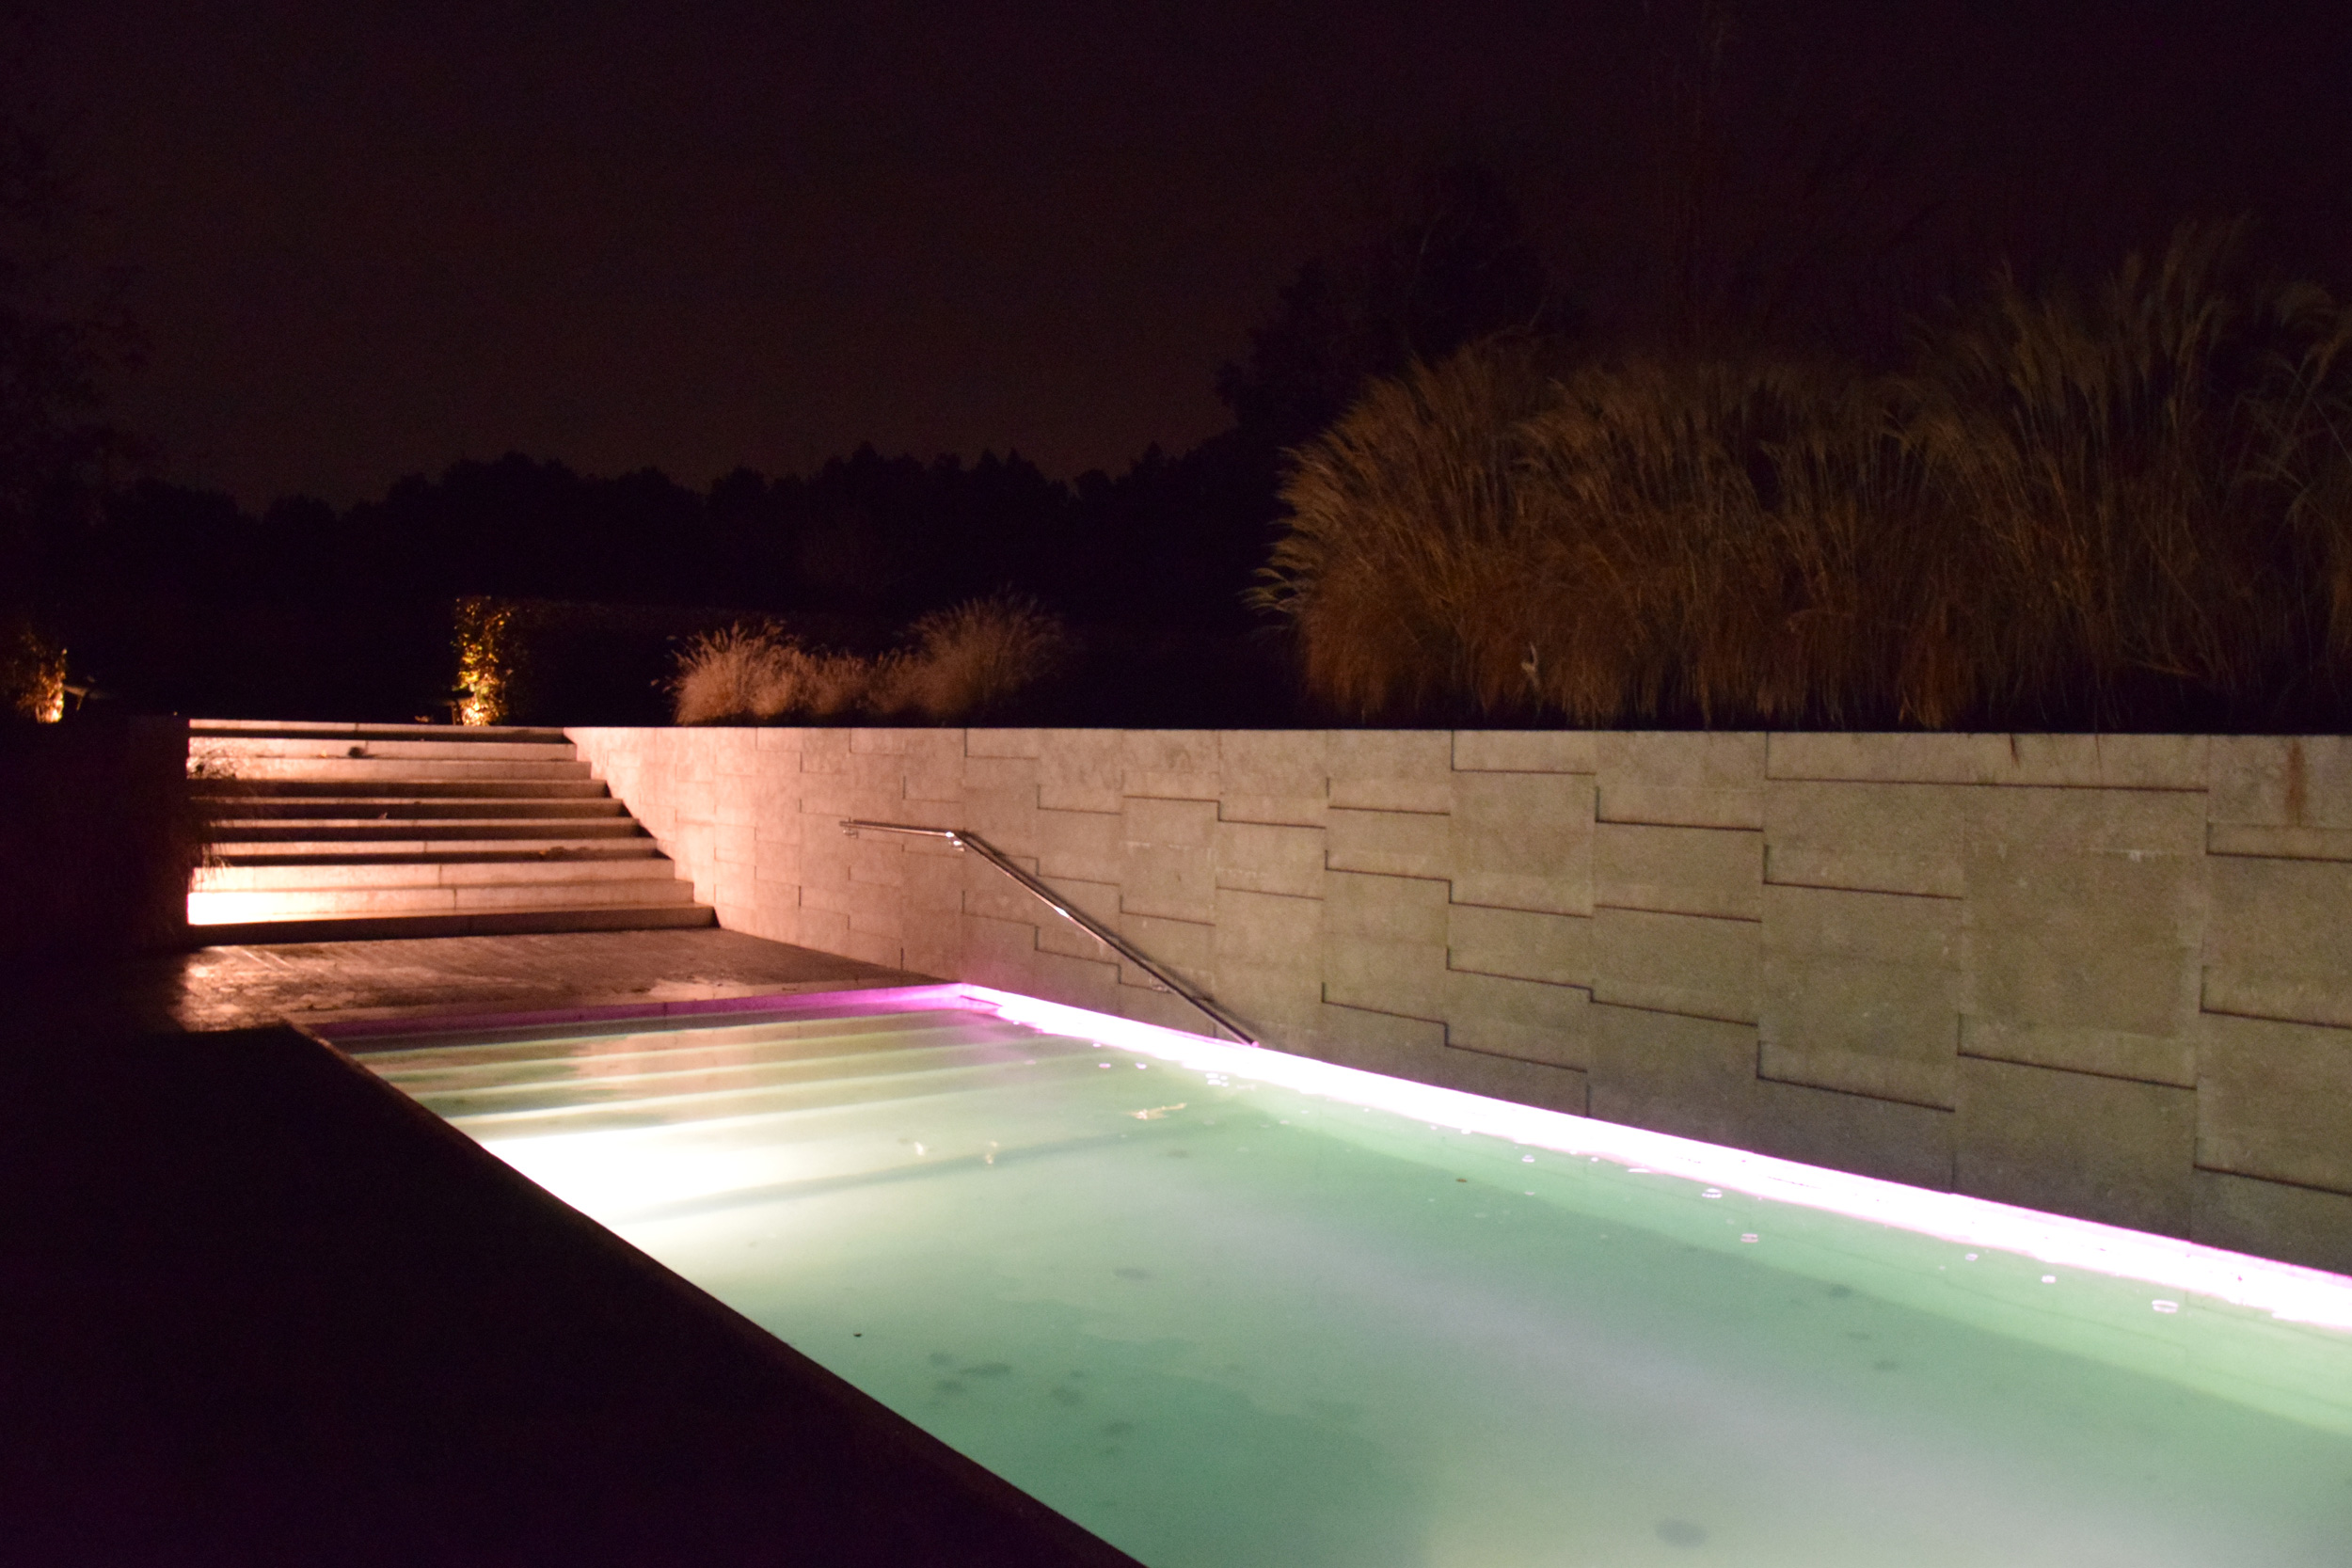 Pennisetum alopecuroides, giardino contemporaneo, graminacee, swimmingpool, lights, by night